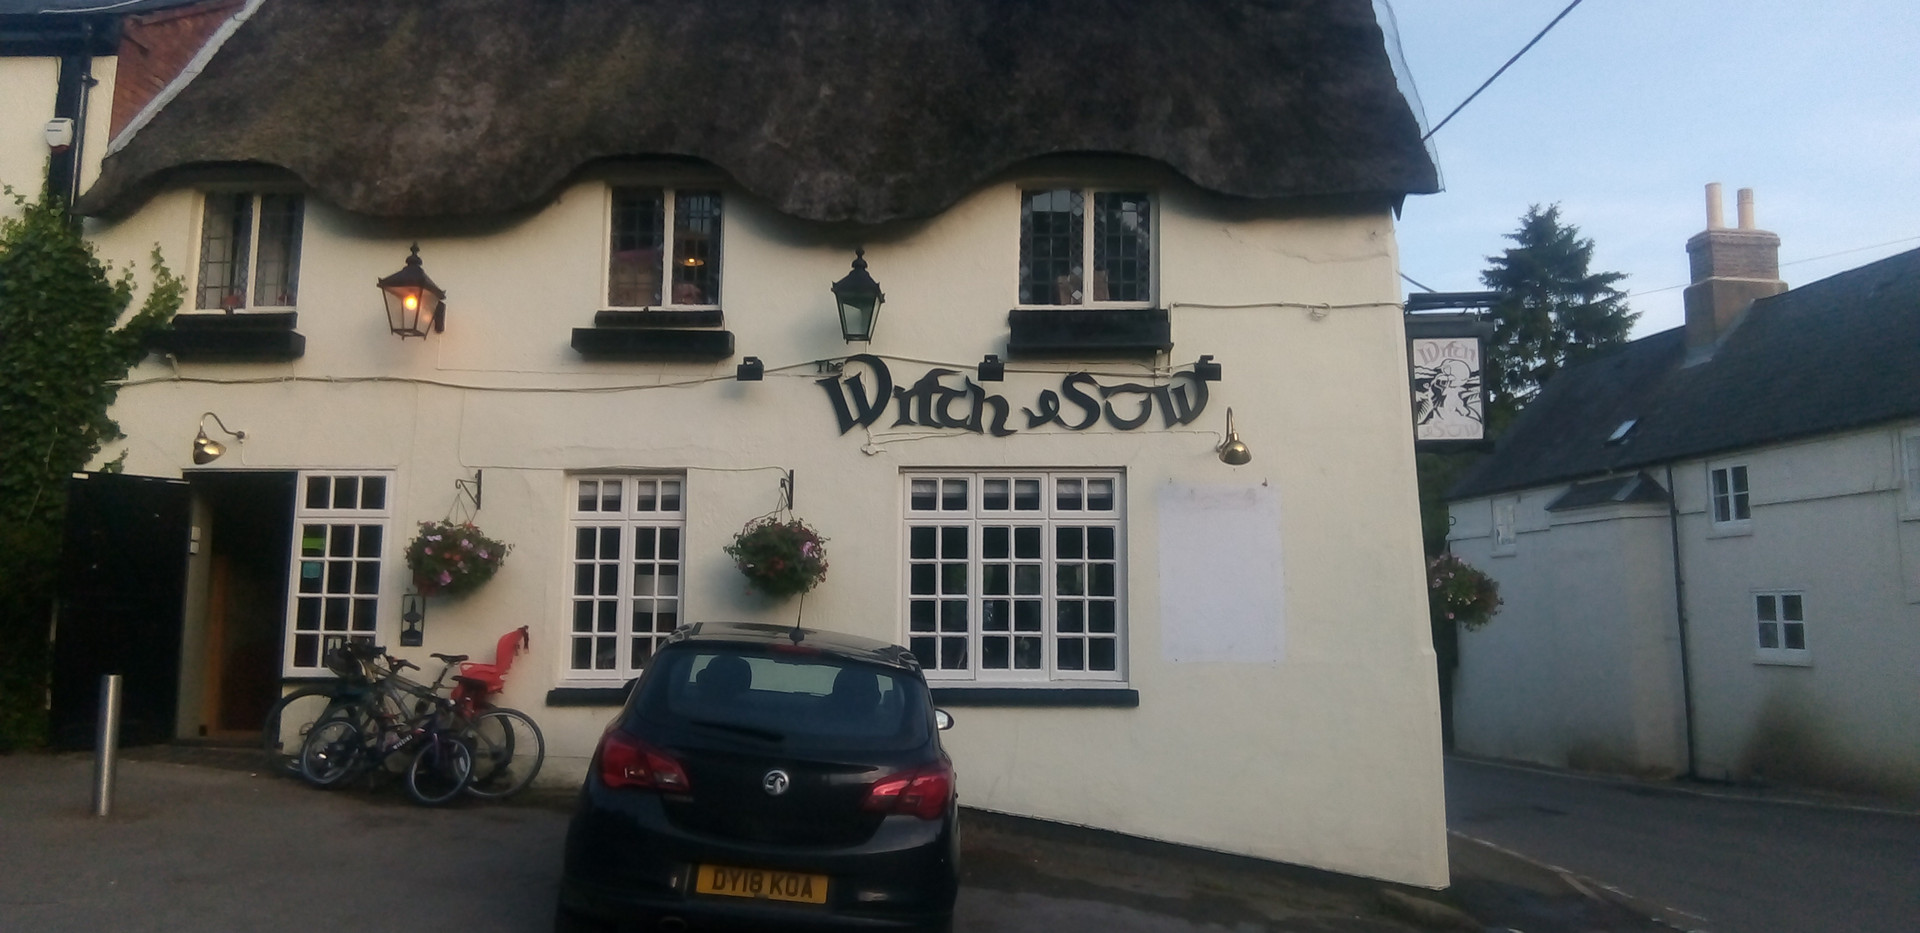 Our Local